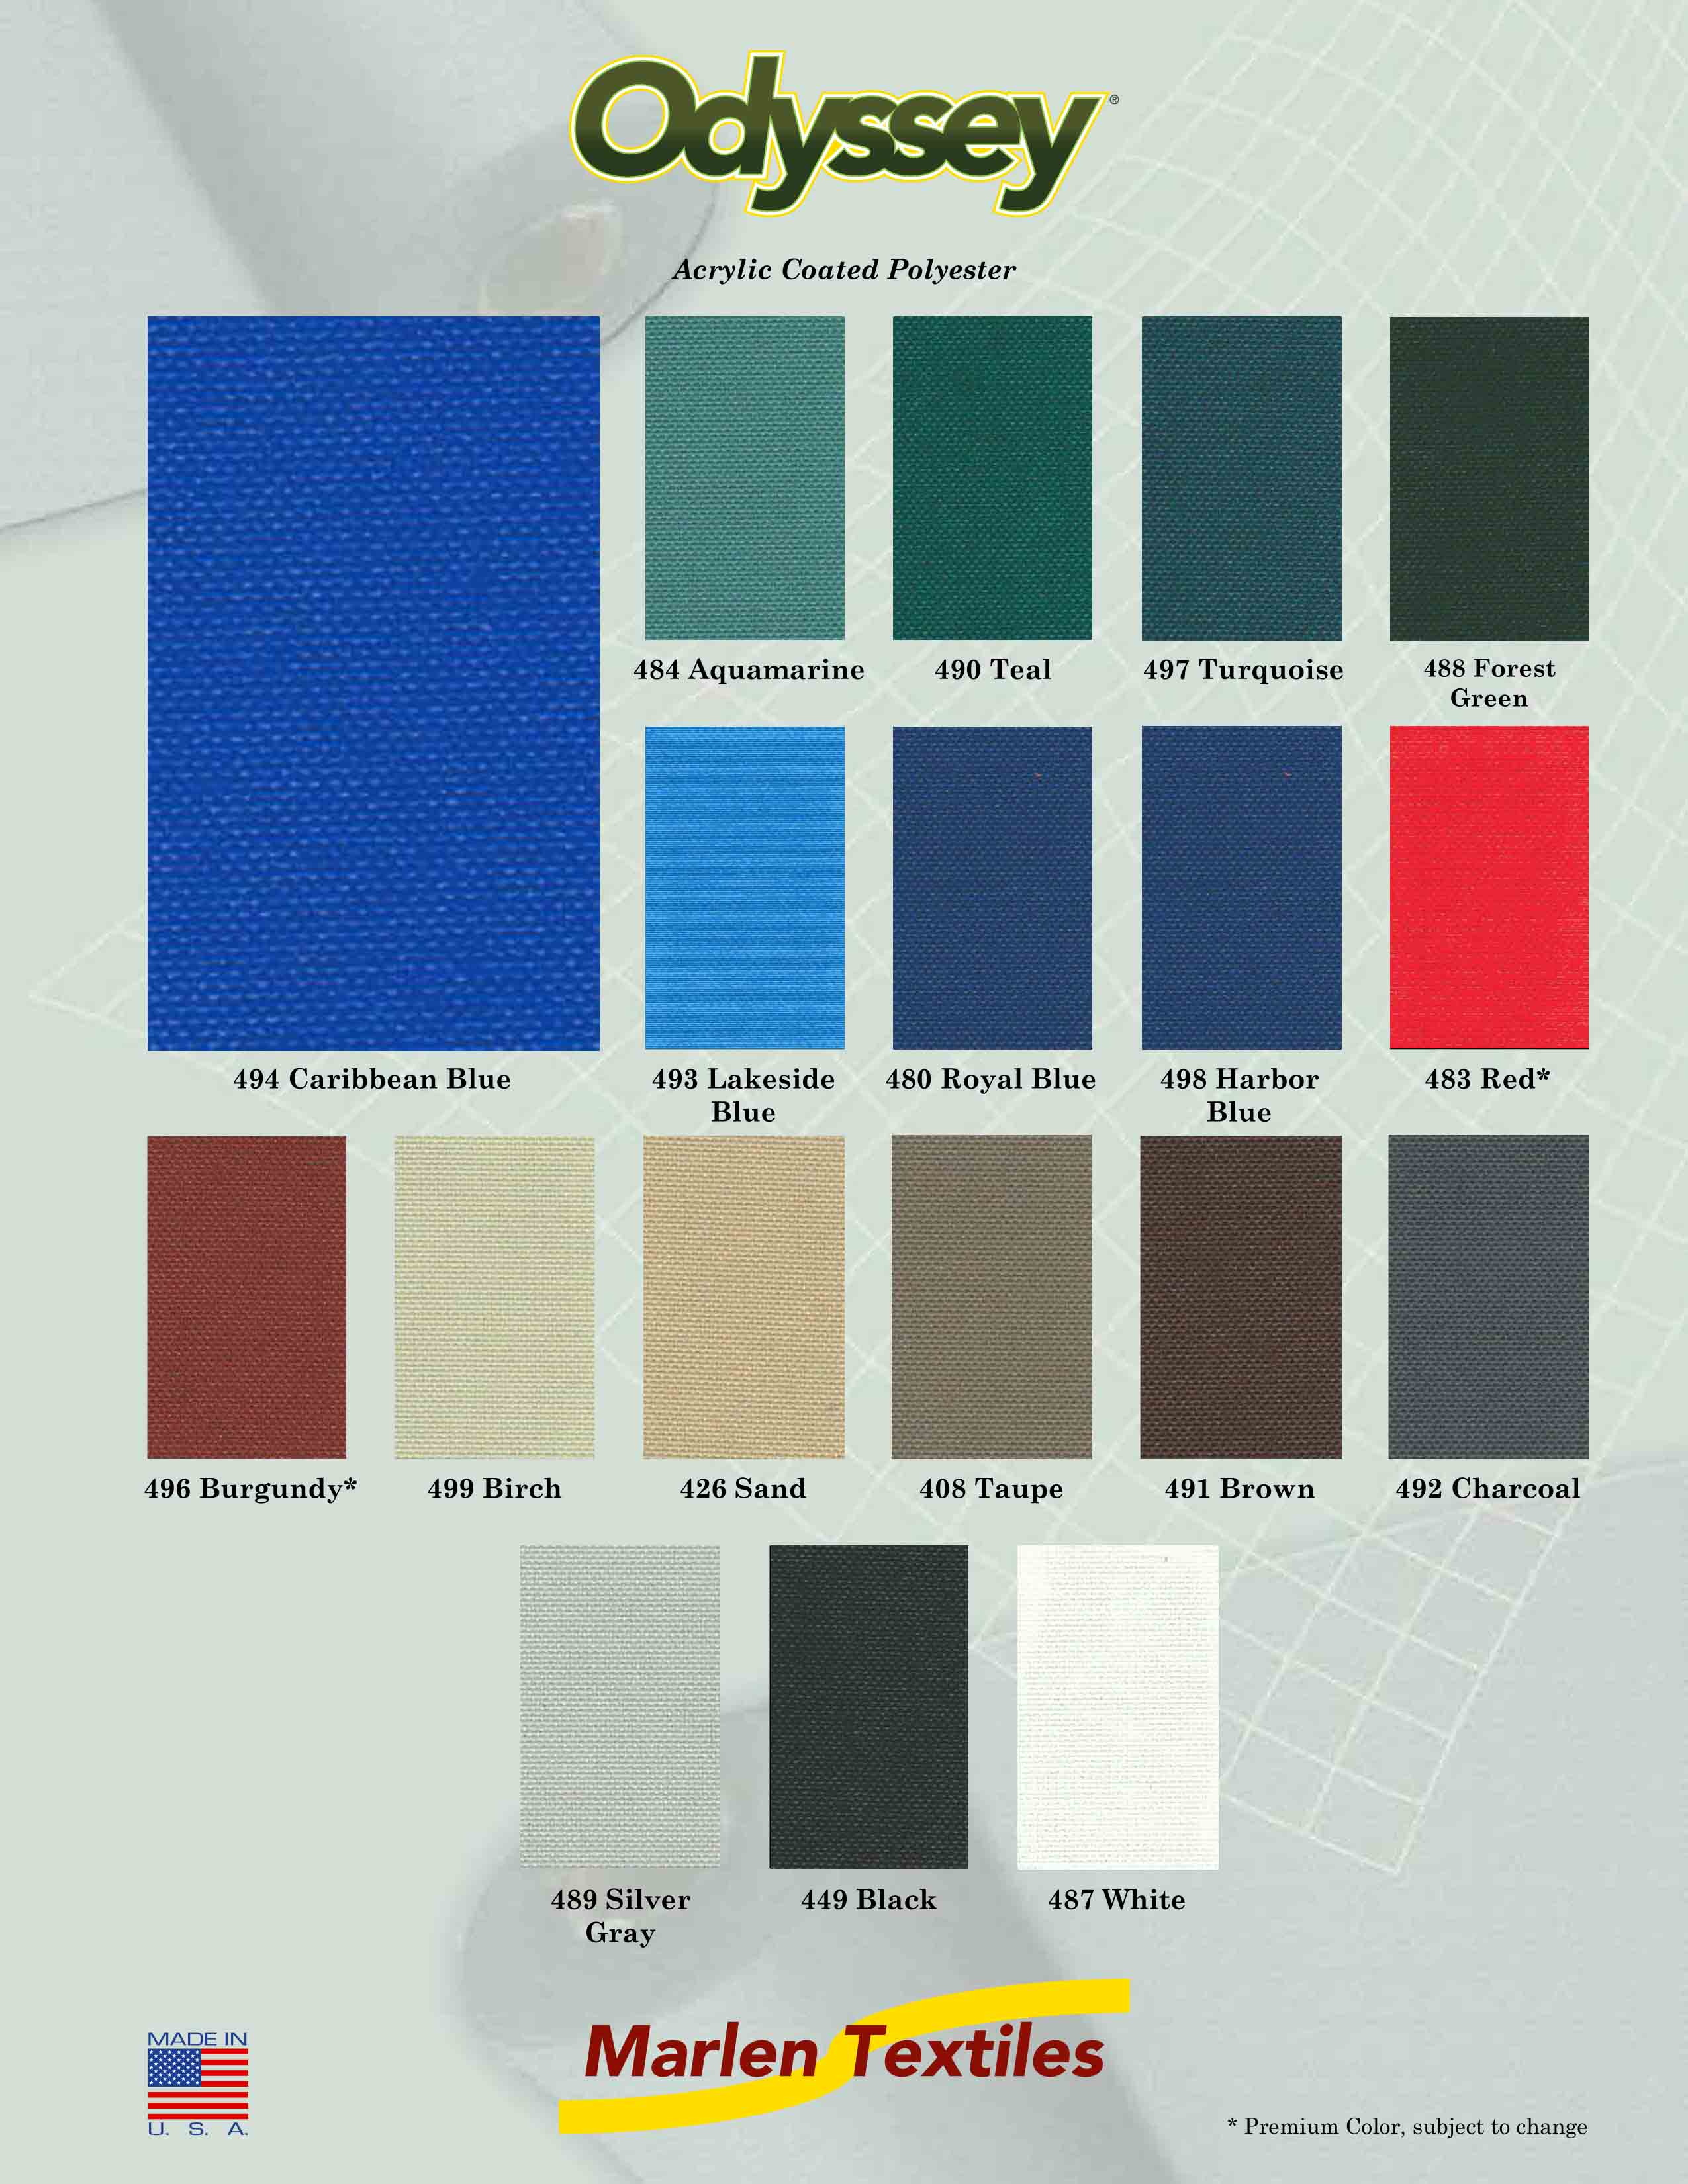 Marlen Textiles | Odyssey Acrylic Coated Polyester Fabric Colors ...